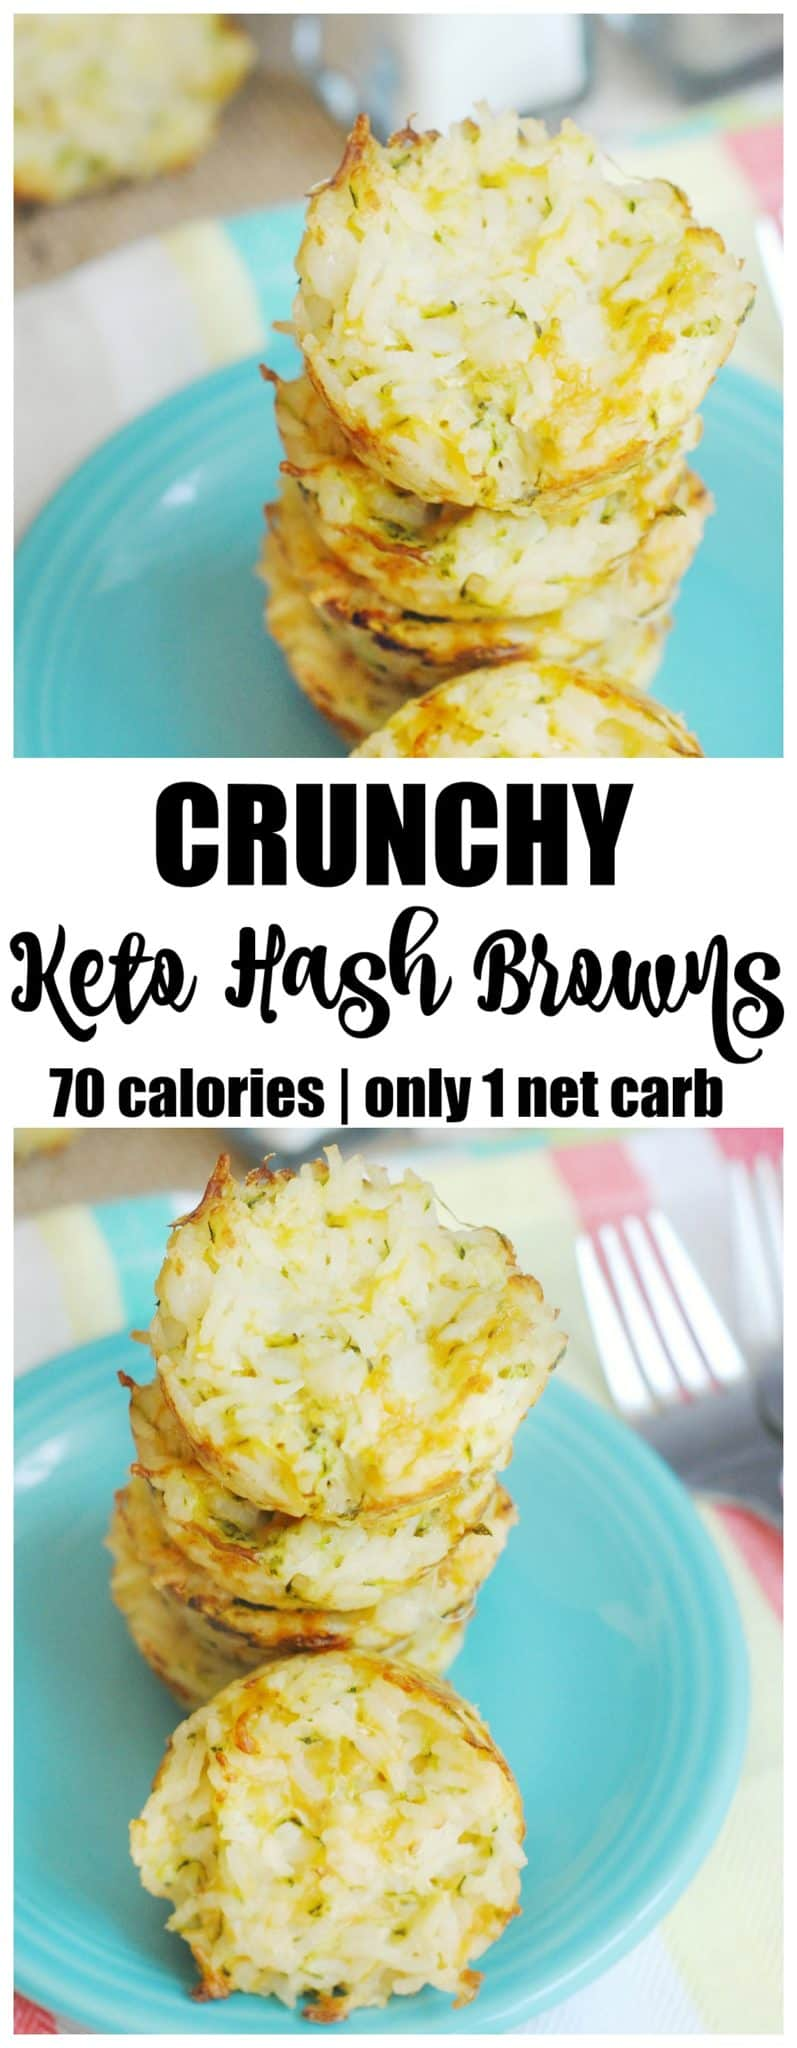 keto hash brown recipe